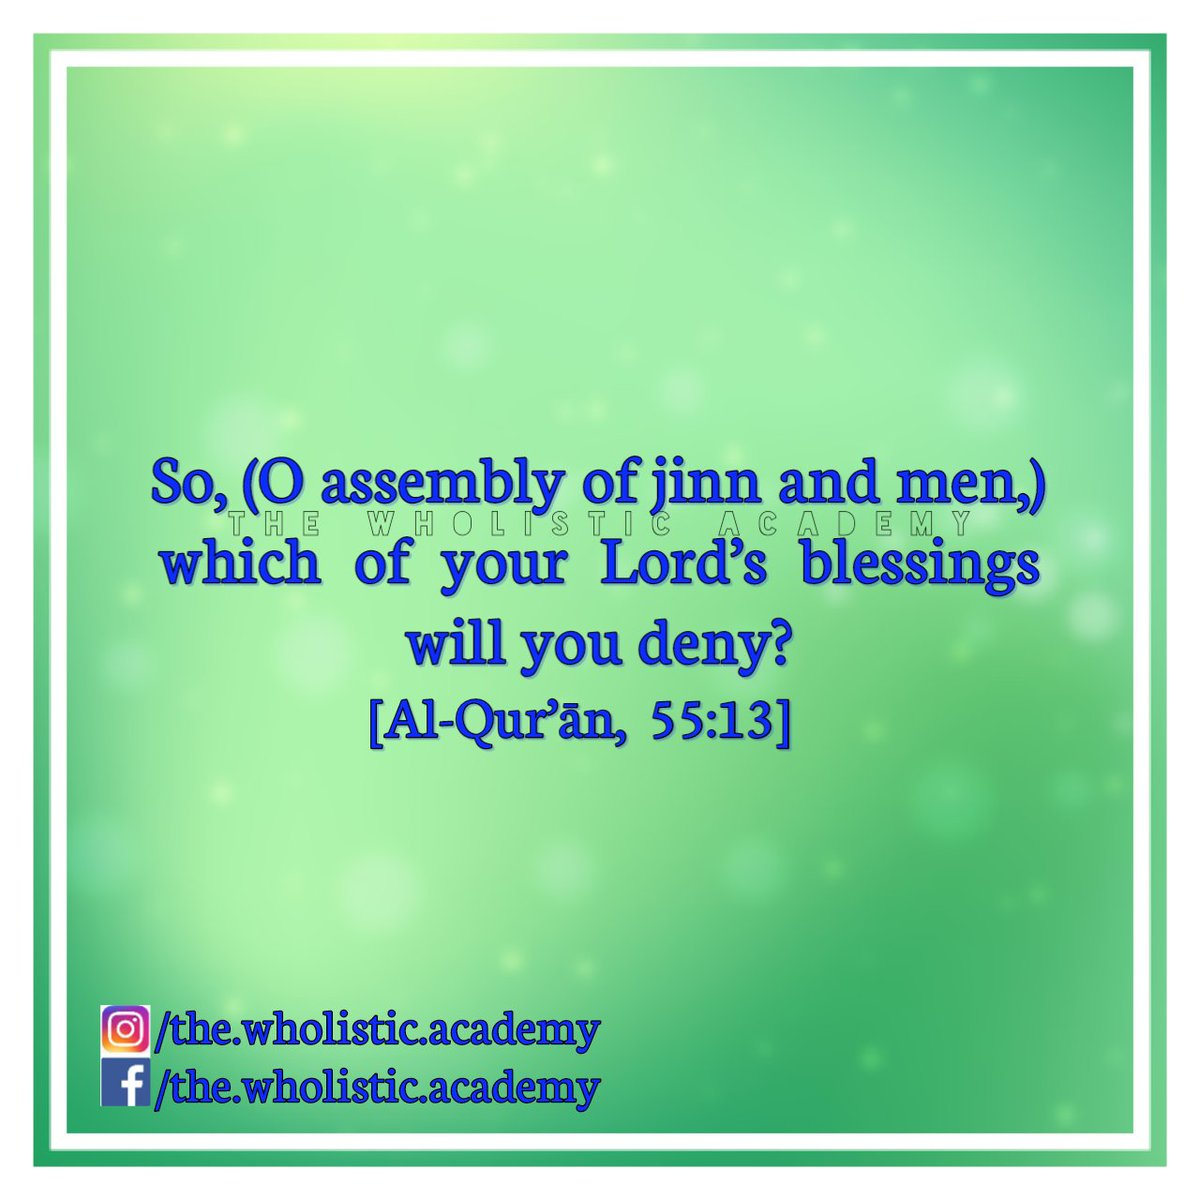 "[55:13] Al-Raḥmān-الرَّحْمٰن  ""So, (O assembly of jinn and men,) which of your Lord's blessings will you deny?""  #TheWholisticAcademy #Comment #Like #Share #Muslims #Islam #World #Humanity #Peace #Harmony #Photooftheday #Instapost #Fbpost #AlQuran #AyatOfTheDay #Blessings #deny https://t.co/Ef0if5MT8b"